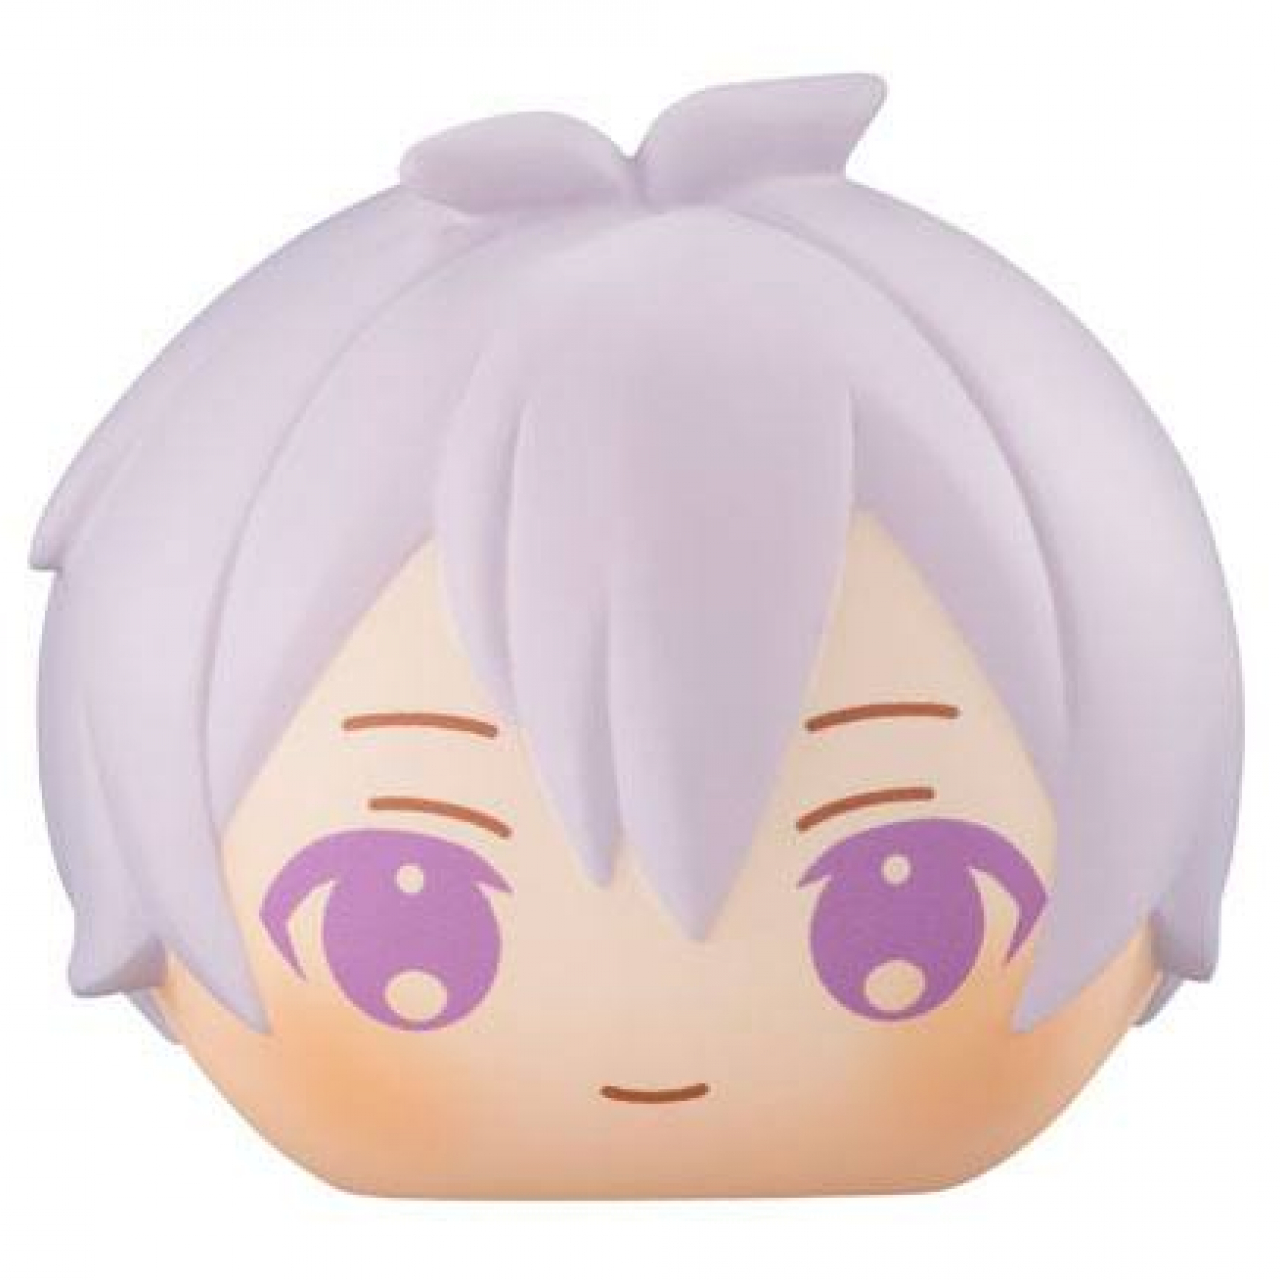 Idolish7 Fluffy Squeeze Bread Anti-Stress Figures 8 cm Assortment (8)